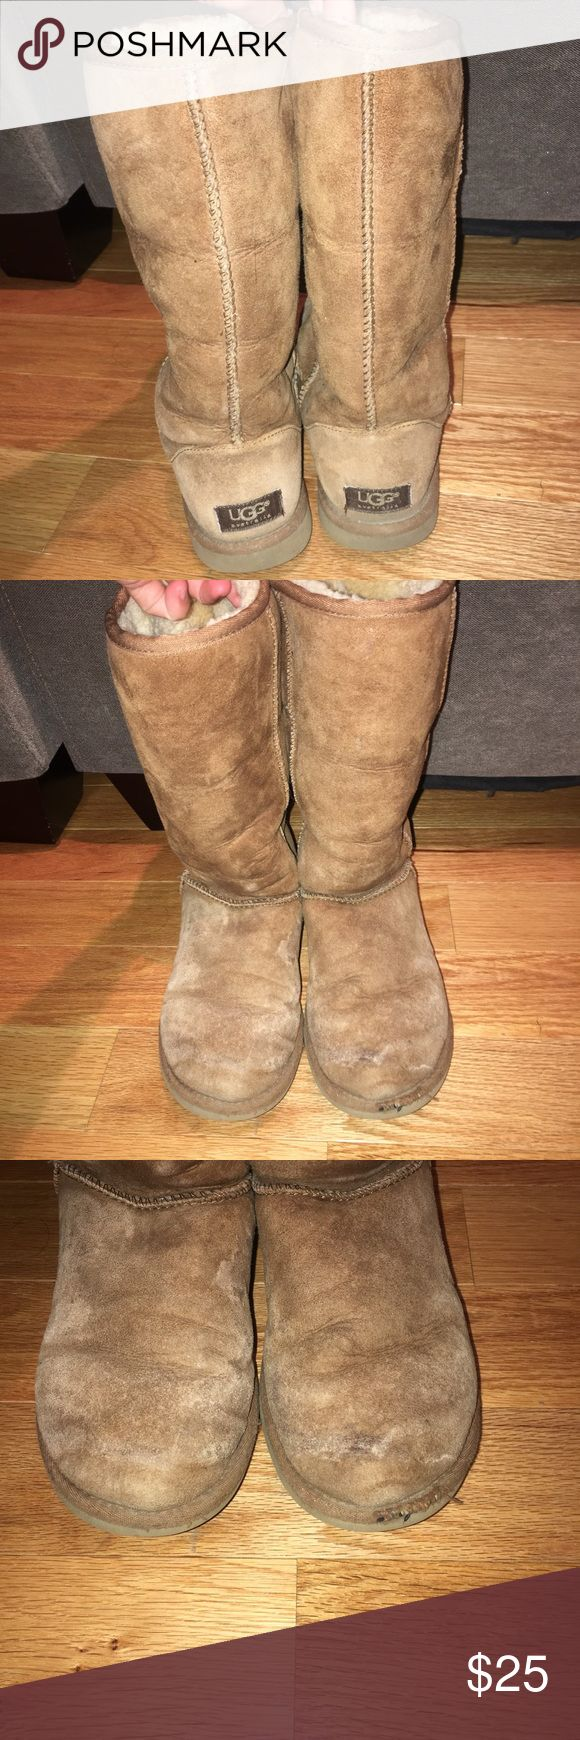 Women's original UGGs Used but still has some good life left. Price will reflect condition. Flaw on the front toe as shown in picture. Inside of both are still in good condition. Outside definitely has some wear, but I'm selling for a friend that has not worn them in a few years. Size 7. Willing to negotiate. UGG Shoes Winter & Rain Boots